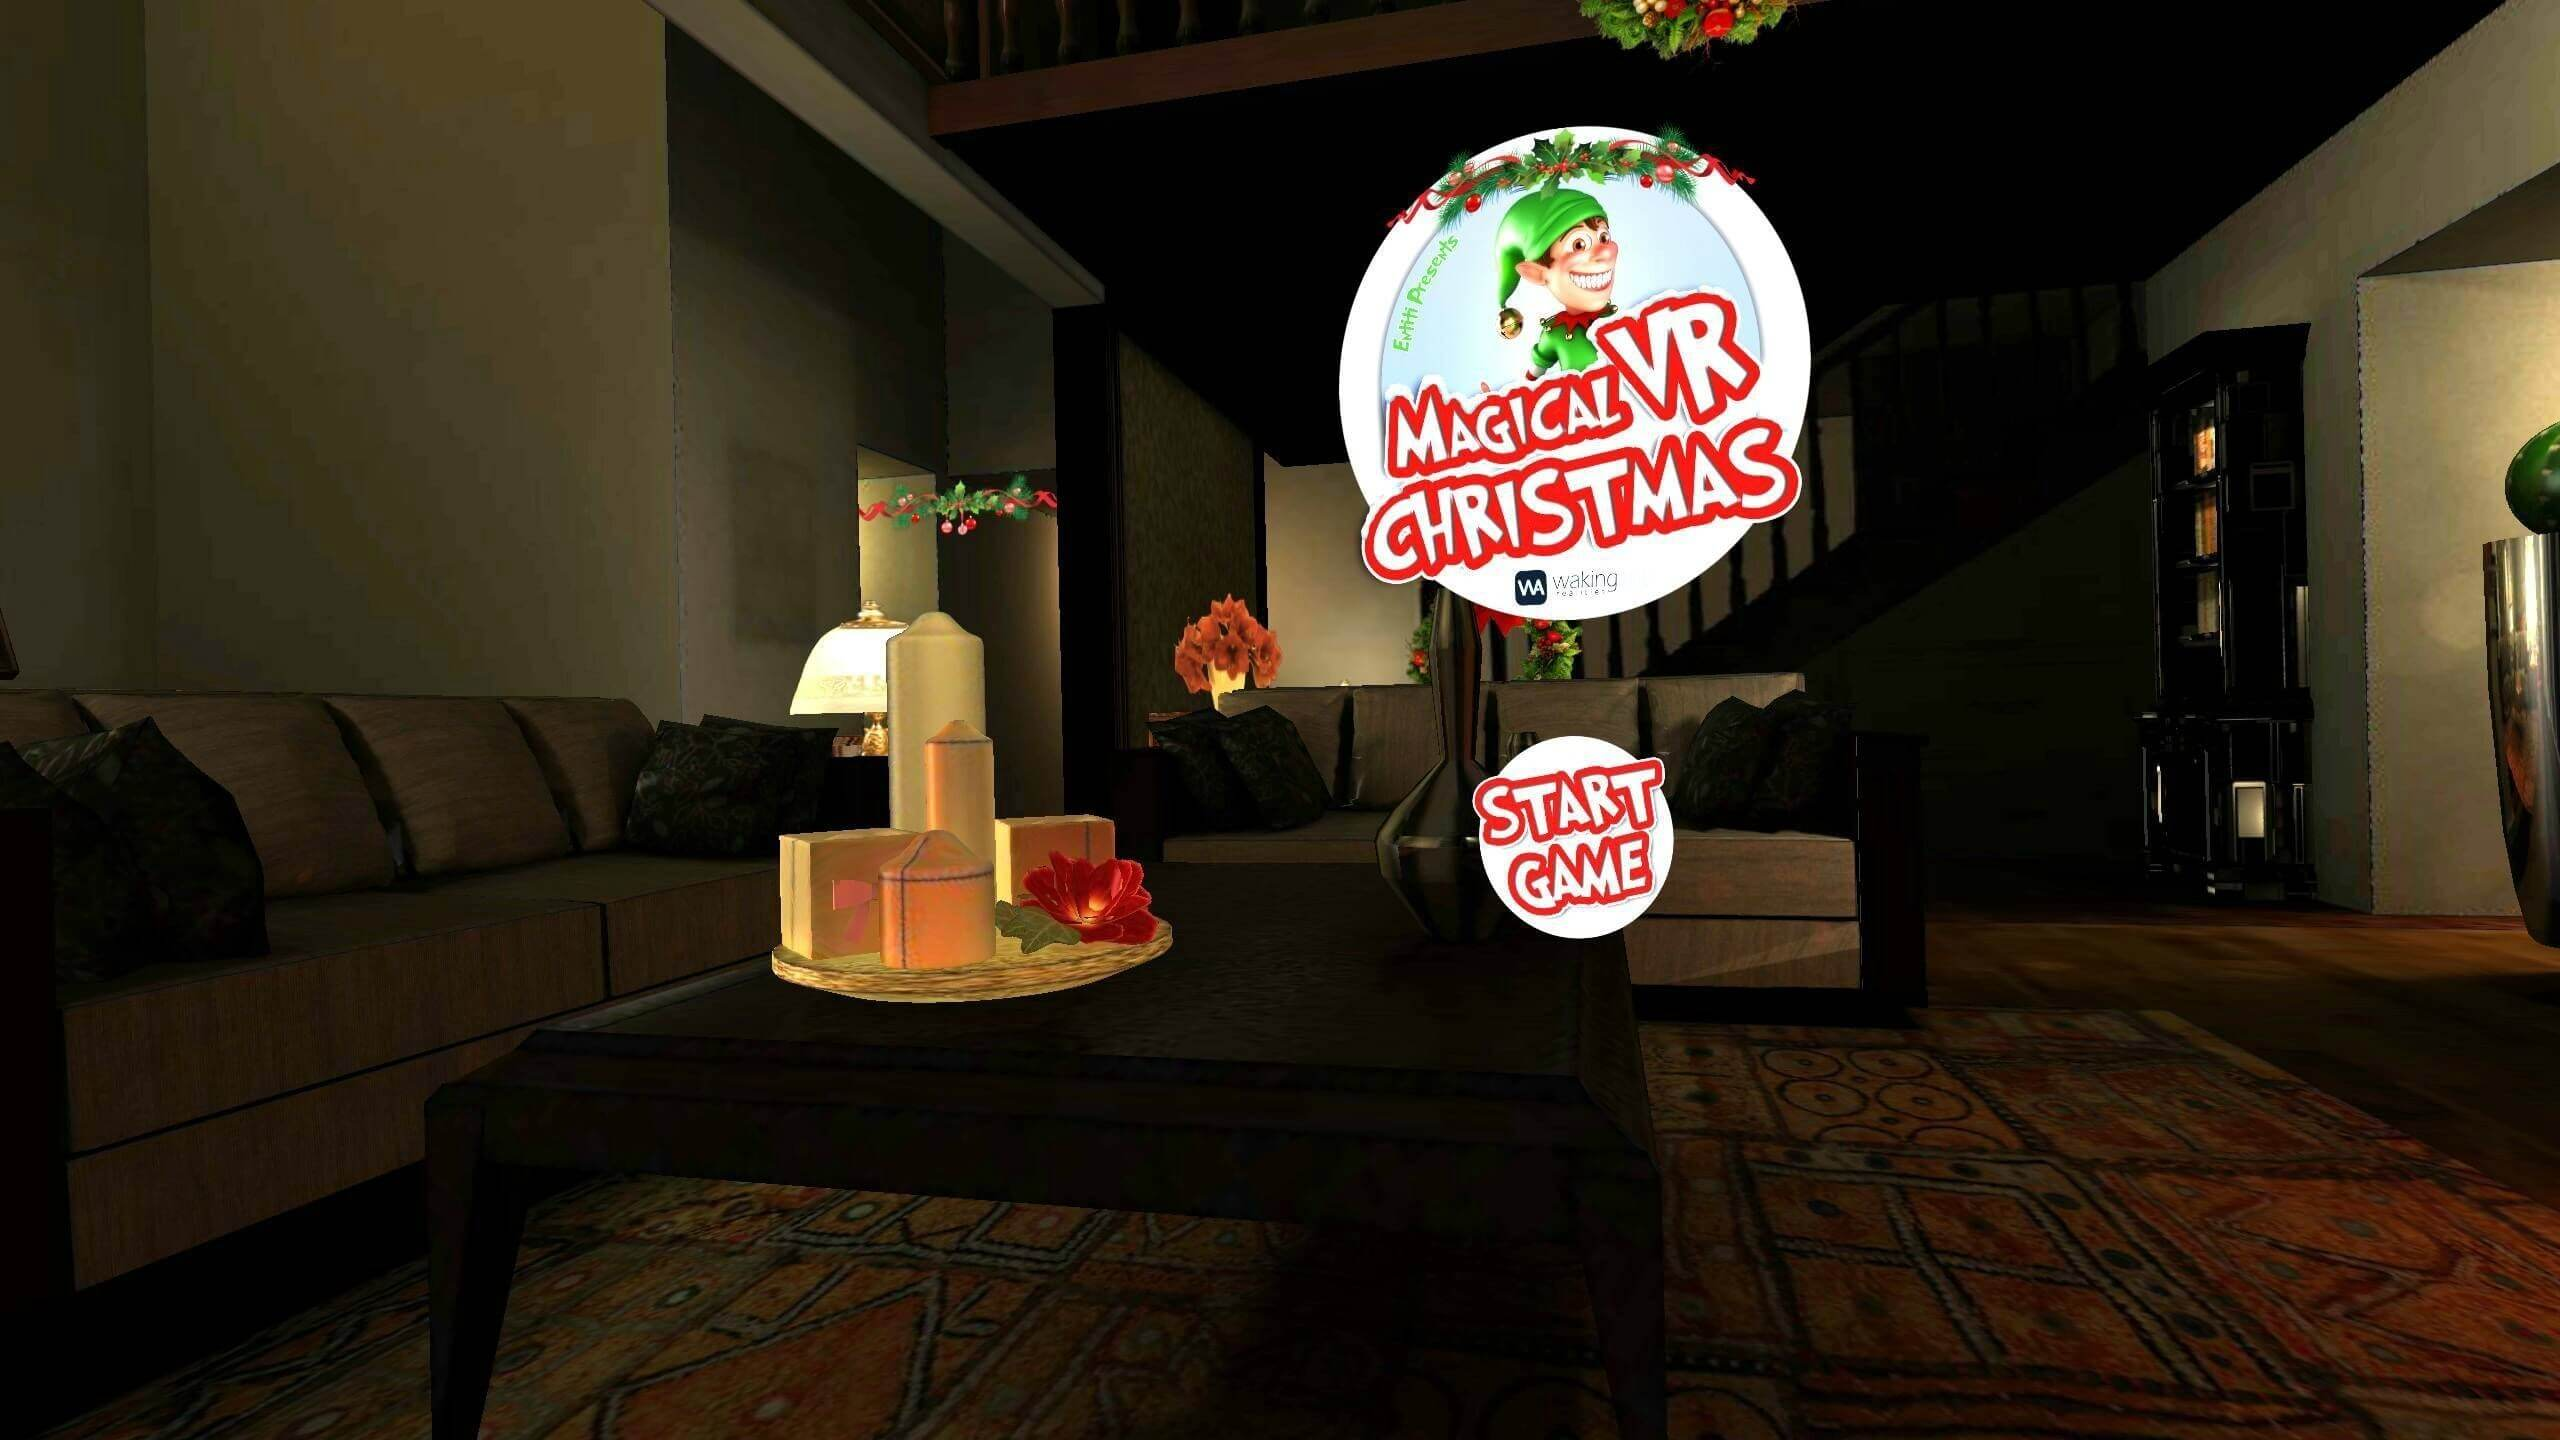 Screenshot from WakingApp's Magical VR Christmas experience, now available on ENTiTi Viewer for iPhone and Android. (PRNewsFoto/WakingApp)